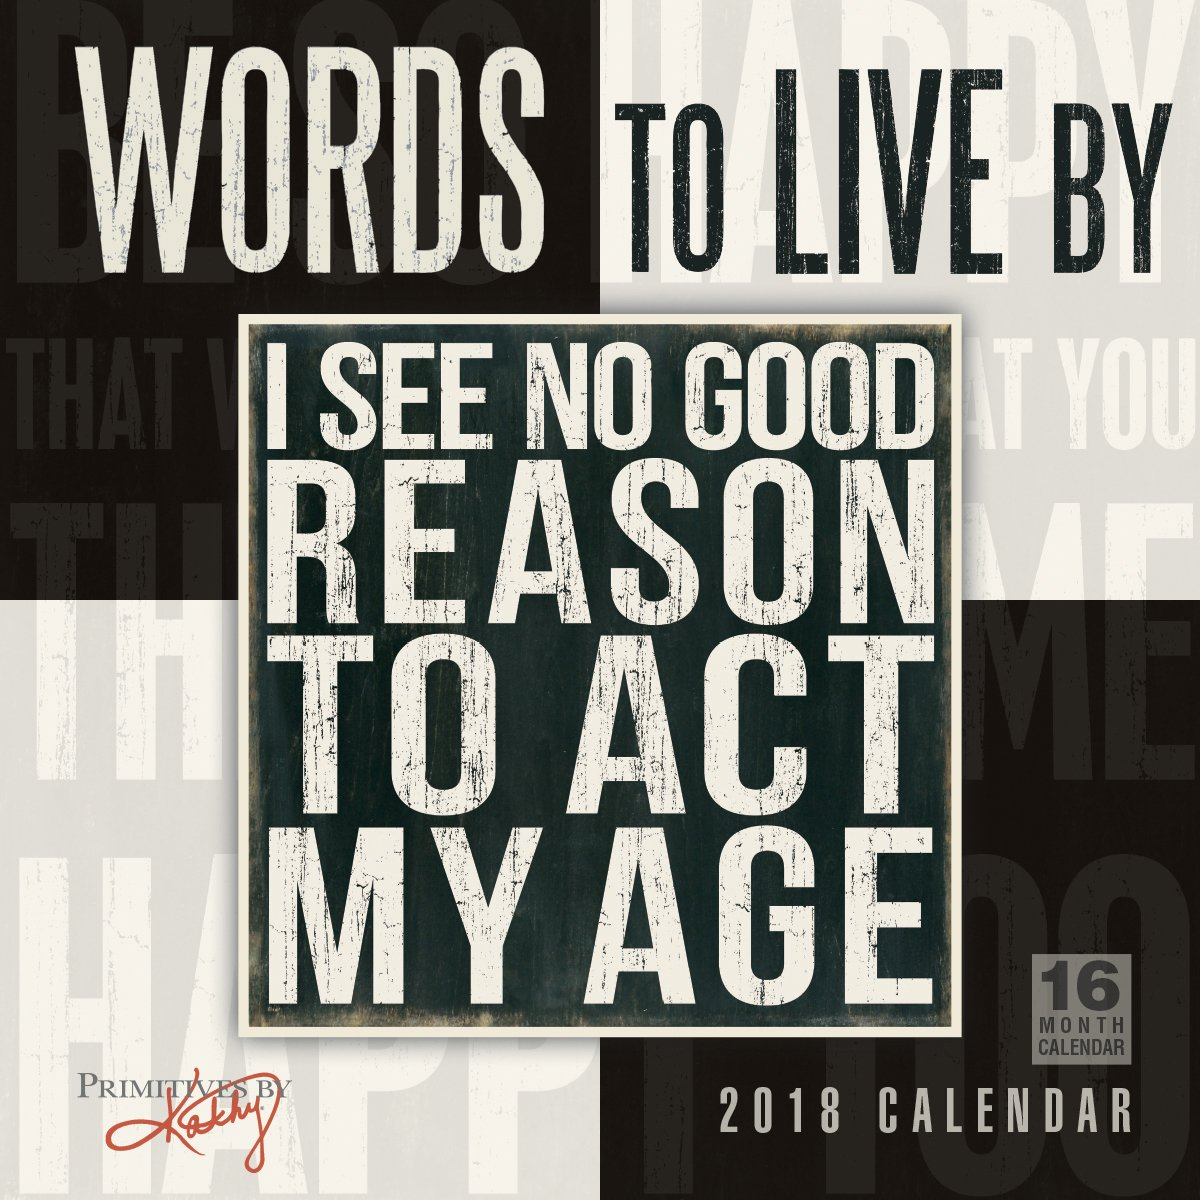 Words To Live By - Primitives By Kathy 2018 Engagement Calendar (CW0229):  Primitives by Kathy: 9781531902292: Amazon.com: Office Products